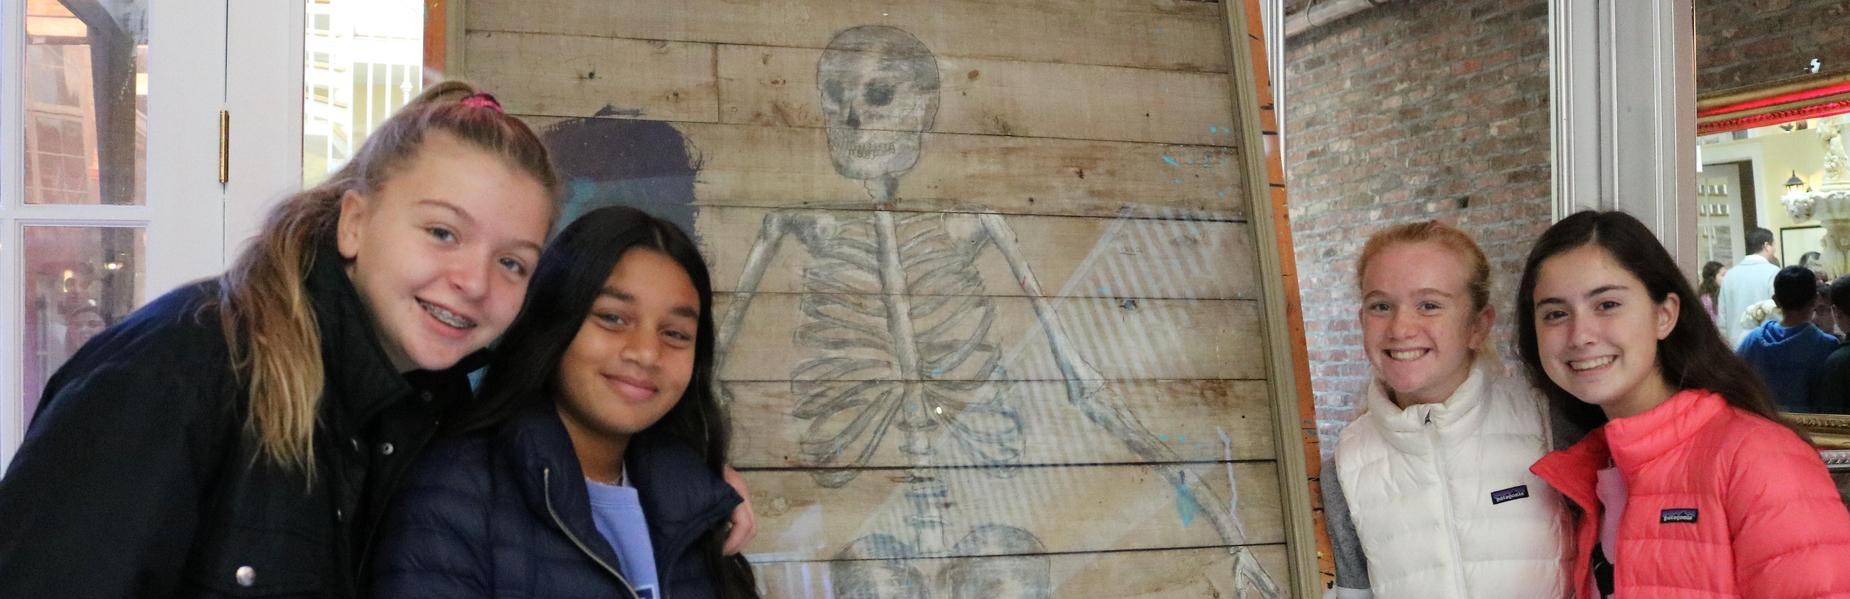 RIS 8th grade art students pose in front Dudley, an original sketch by Westfield native Charles Addams during a visit to an exhibit of Addams' work.